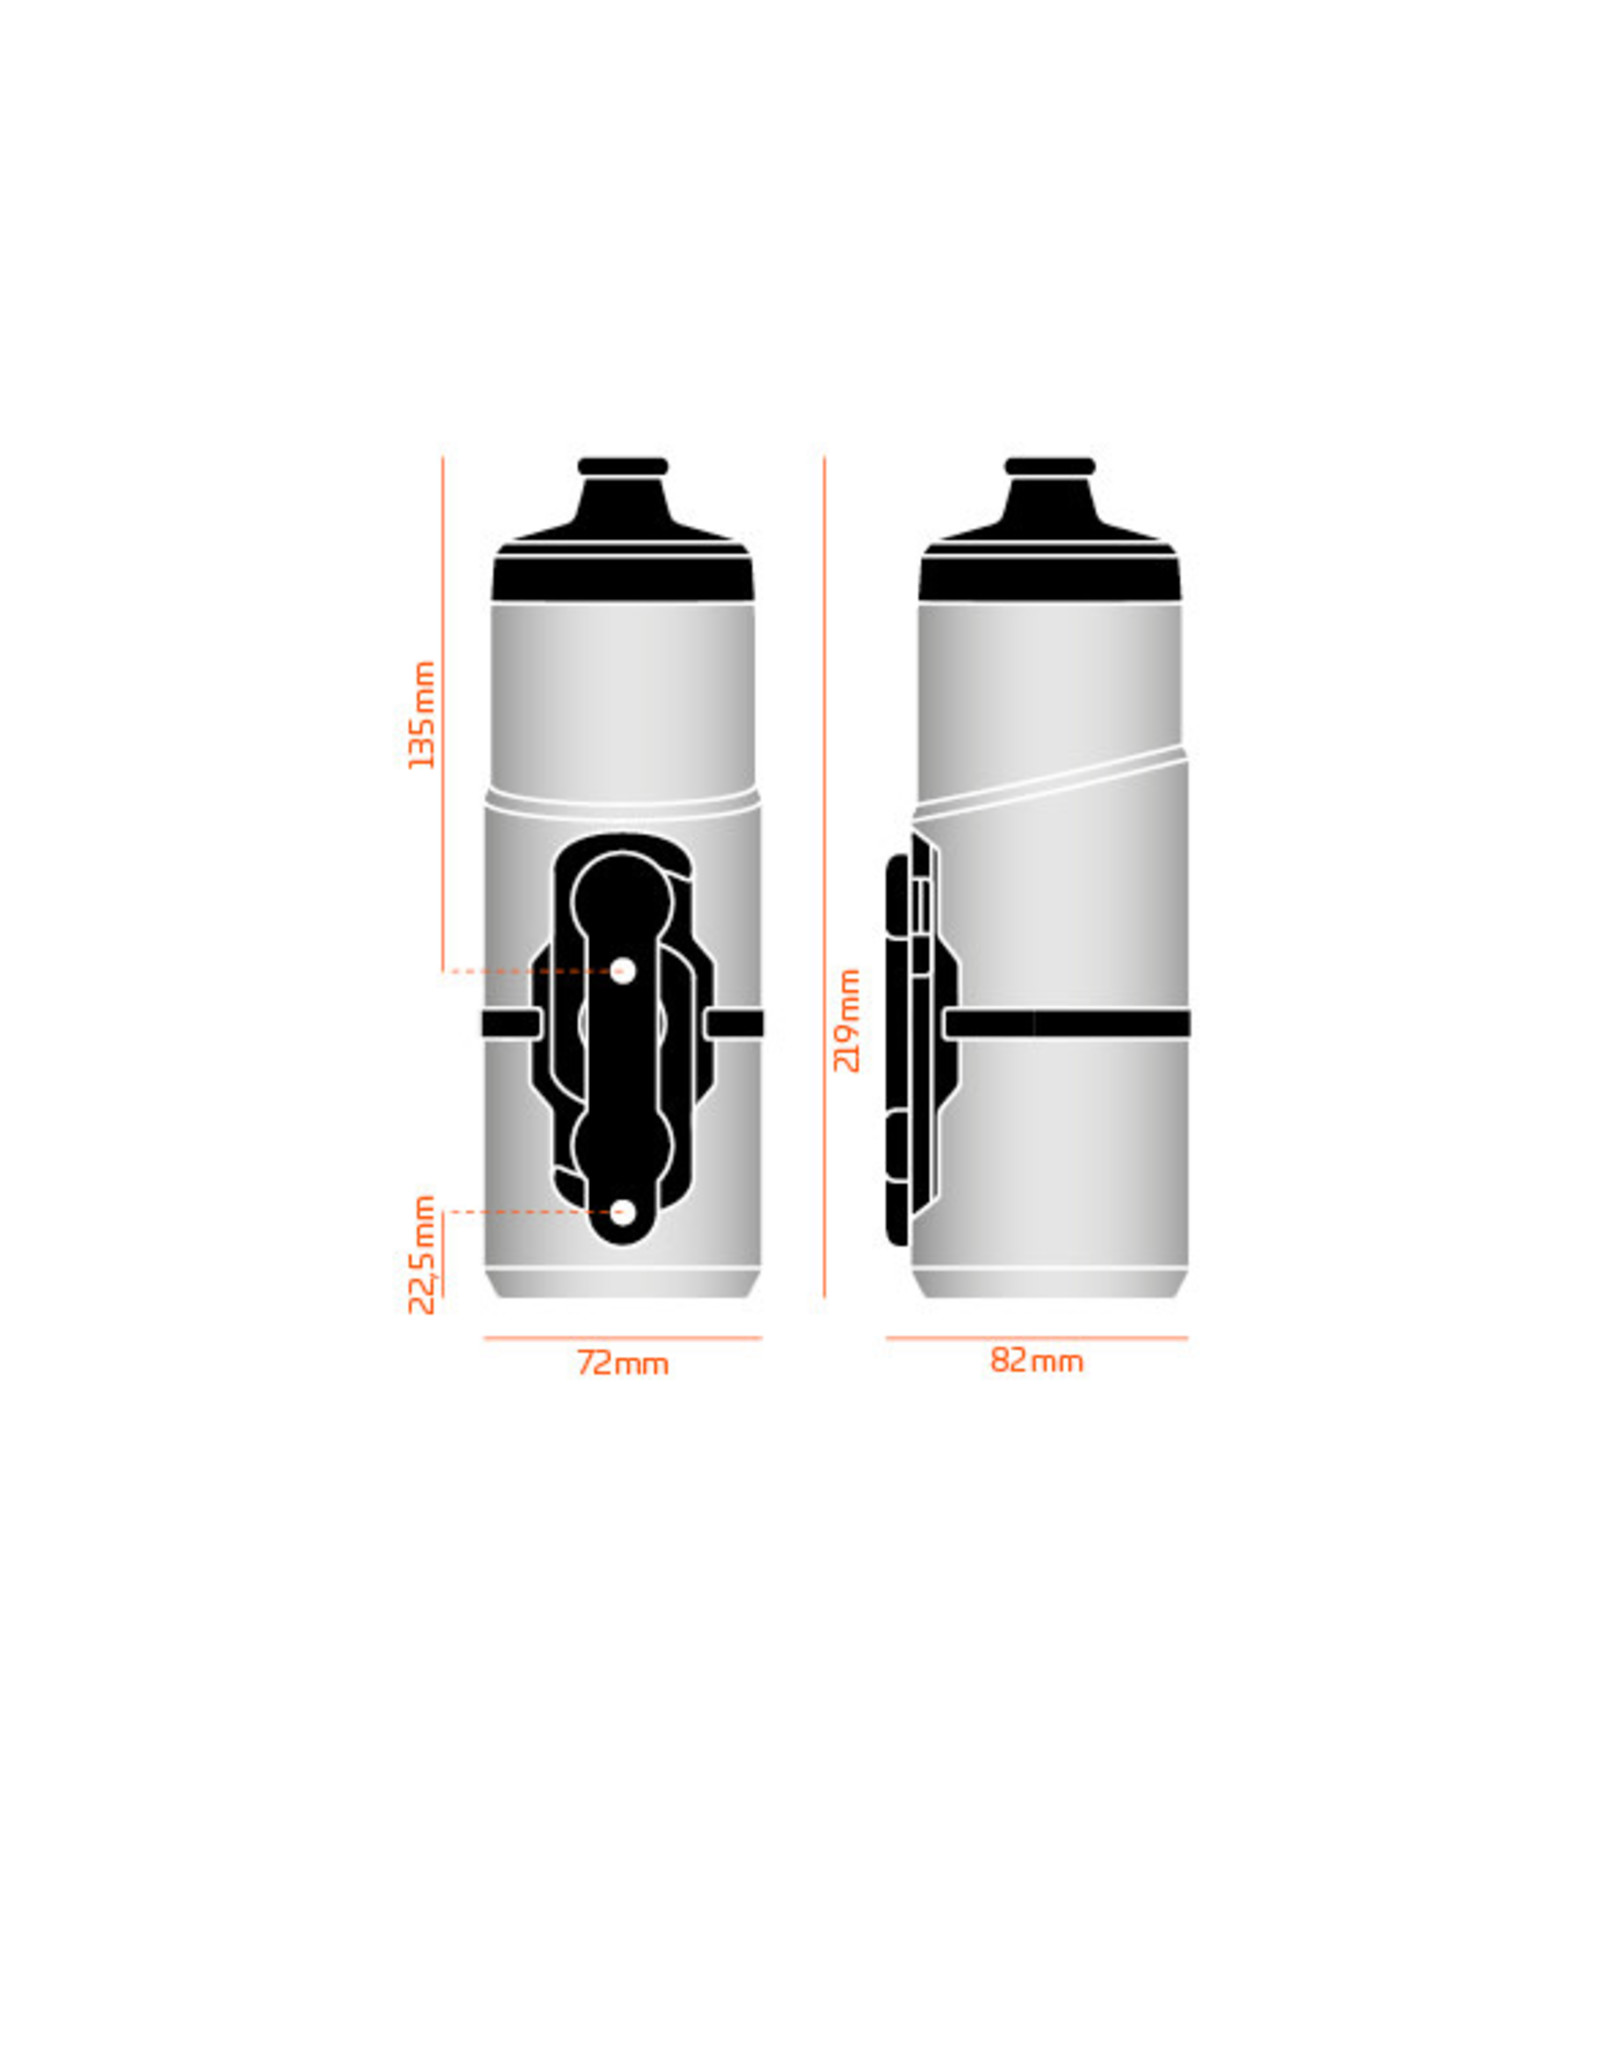 Fidlock BOUTEILLE FIDLOCK 600ML WITH BIKE BASE TRANSPARENT BLACK